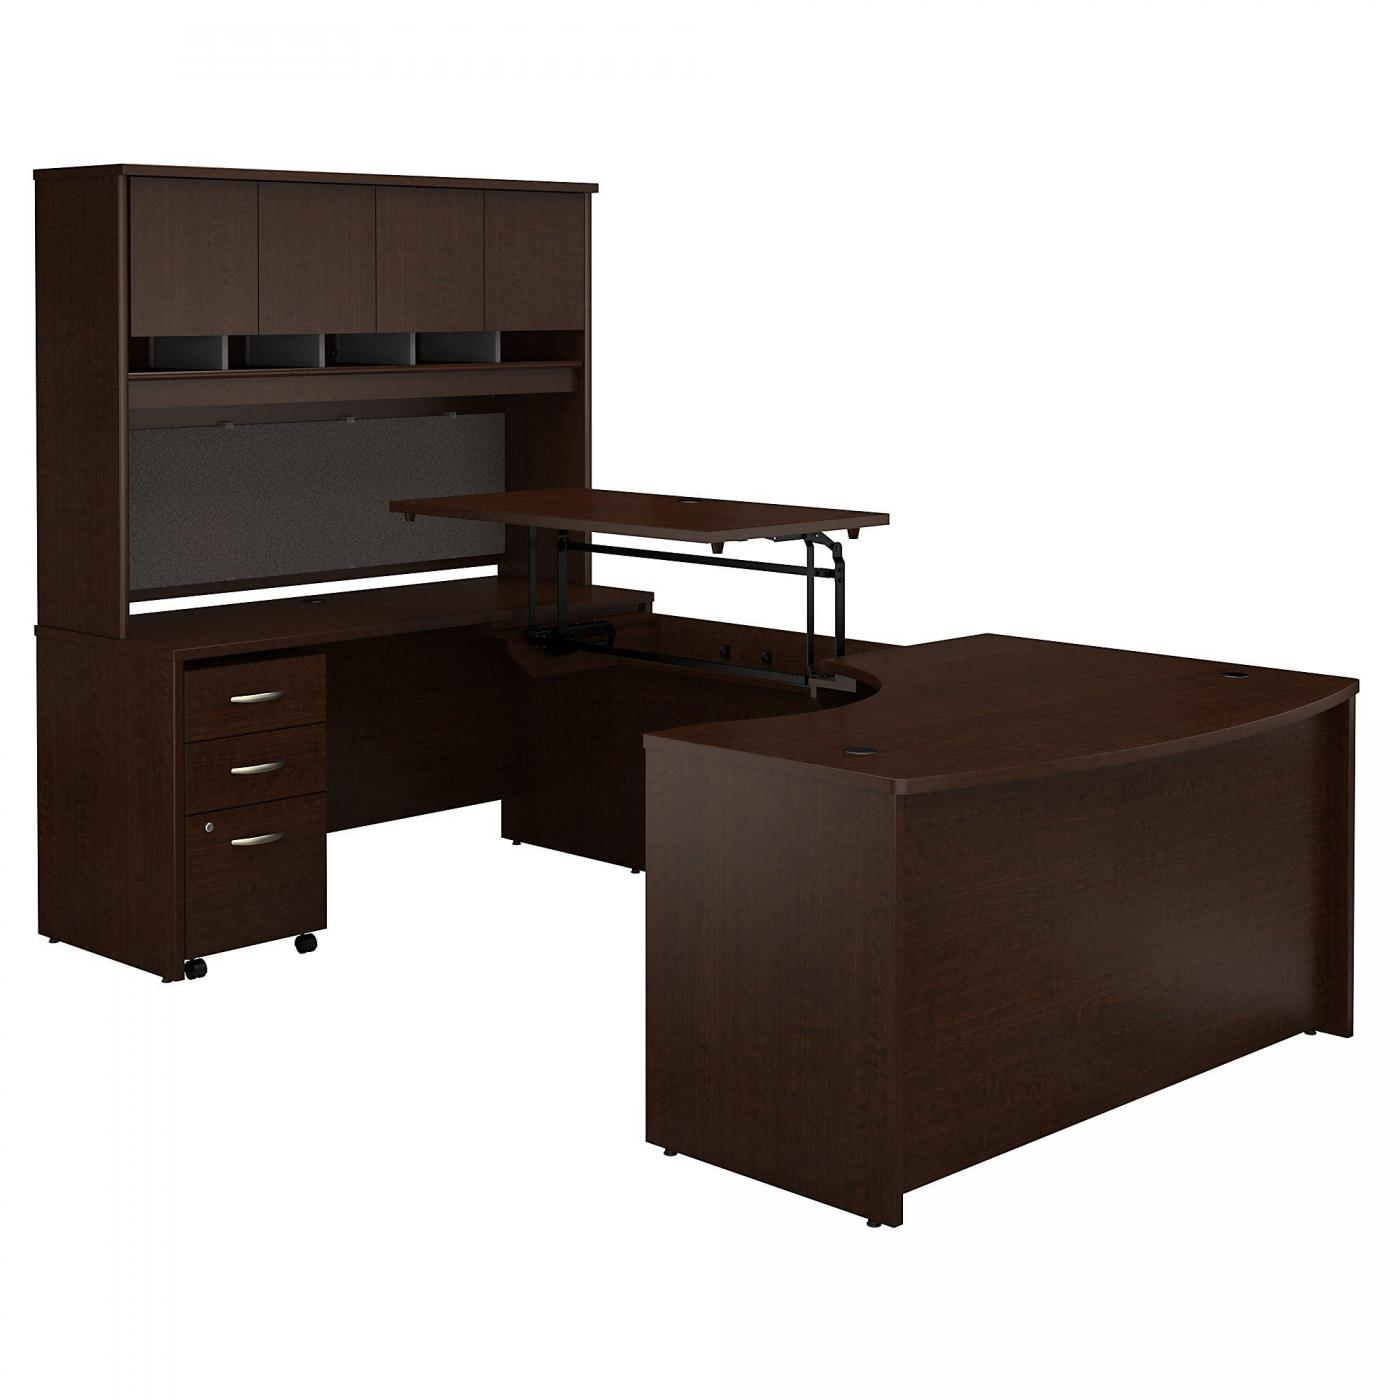 </b></font><b>BUSH BUSINESS FURNITURE SERIES C 60W X 43D RIGHT HAND 3 POSITION SIT TO STAND U SHAPED DESK WITH HUTCH AND MOBILE FILE CABINET. FREE SHIPPING. VIDEO:</font> <p>RATING:&#11088;&#11088;&#11088;&#11088;&#11088;</b></font></b>